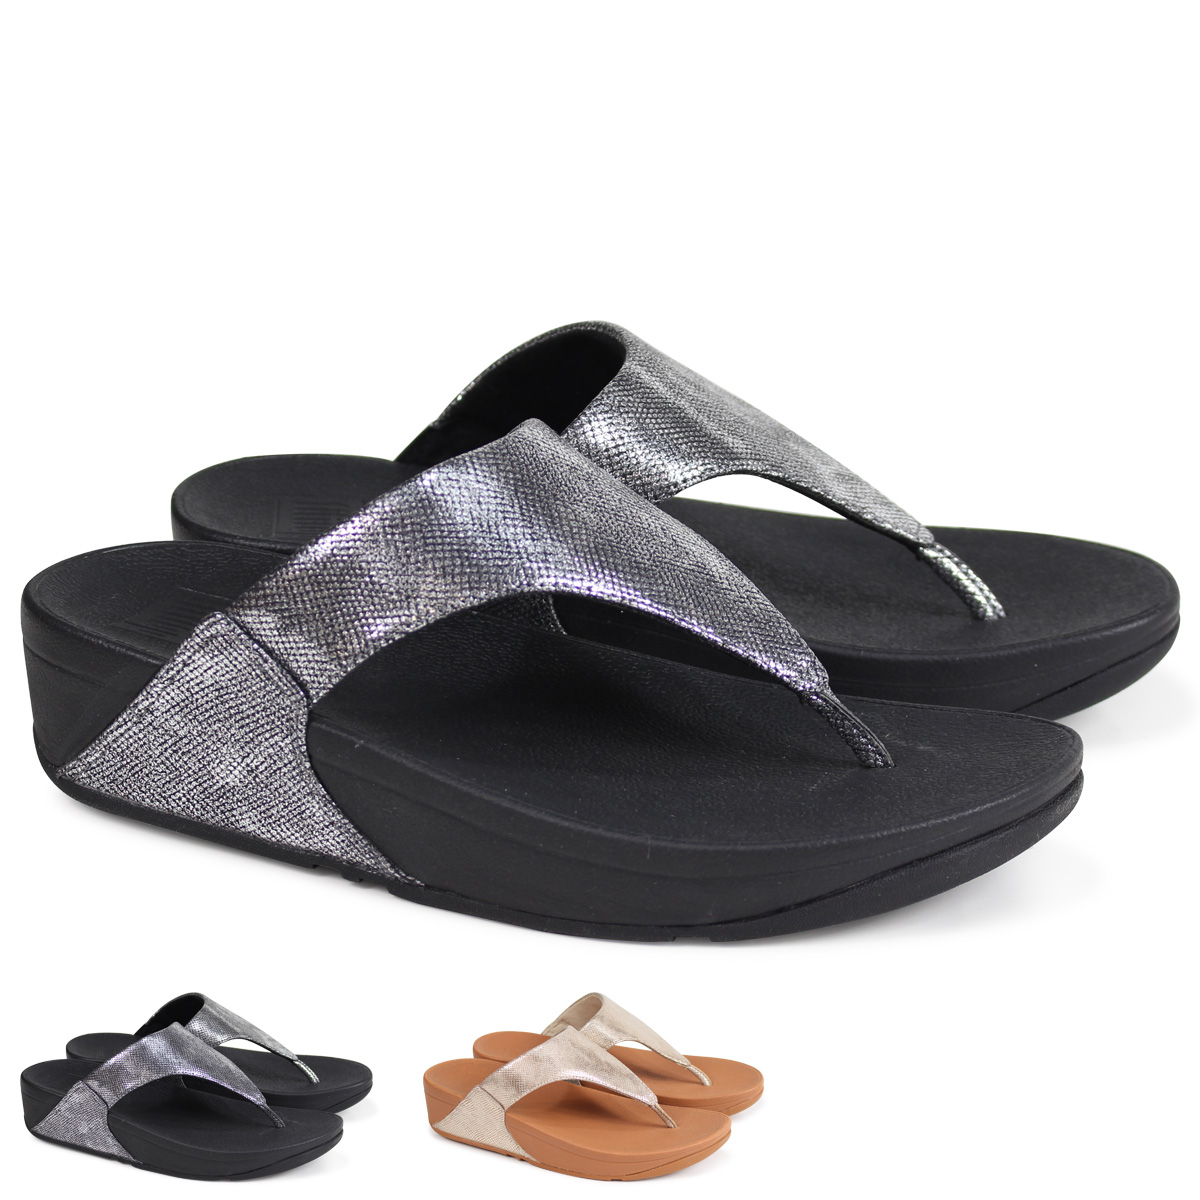 baa4231663b Whats up Sports  FitFlop LULU TOE-THONG SANDALS SHIMMER-PRINT ...